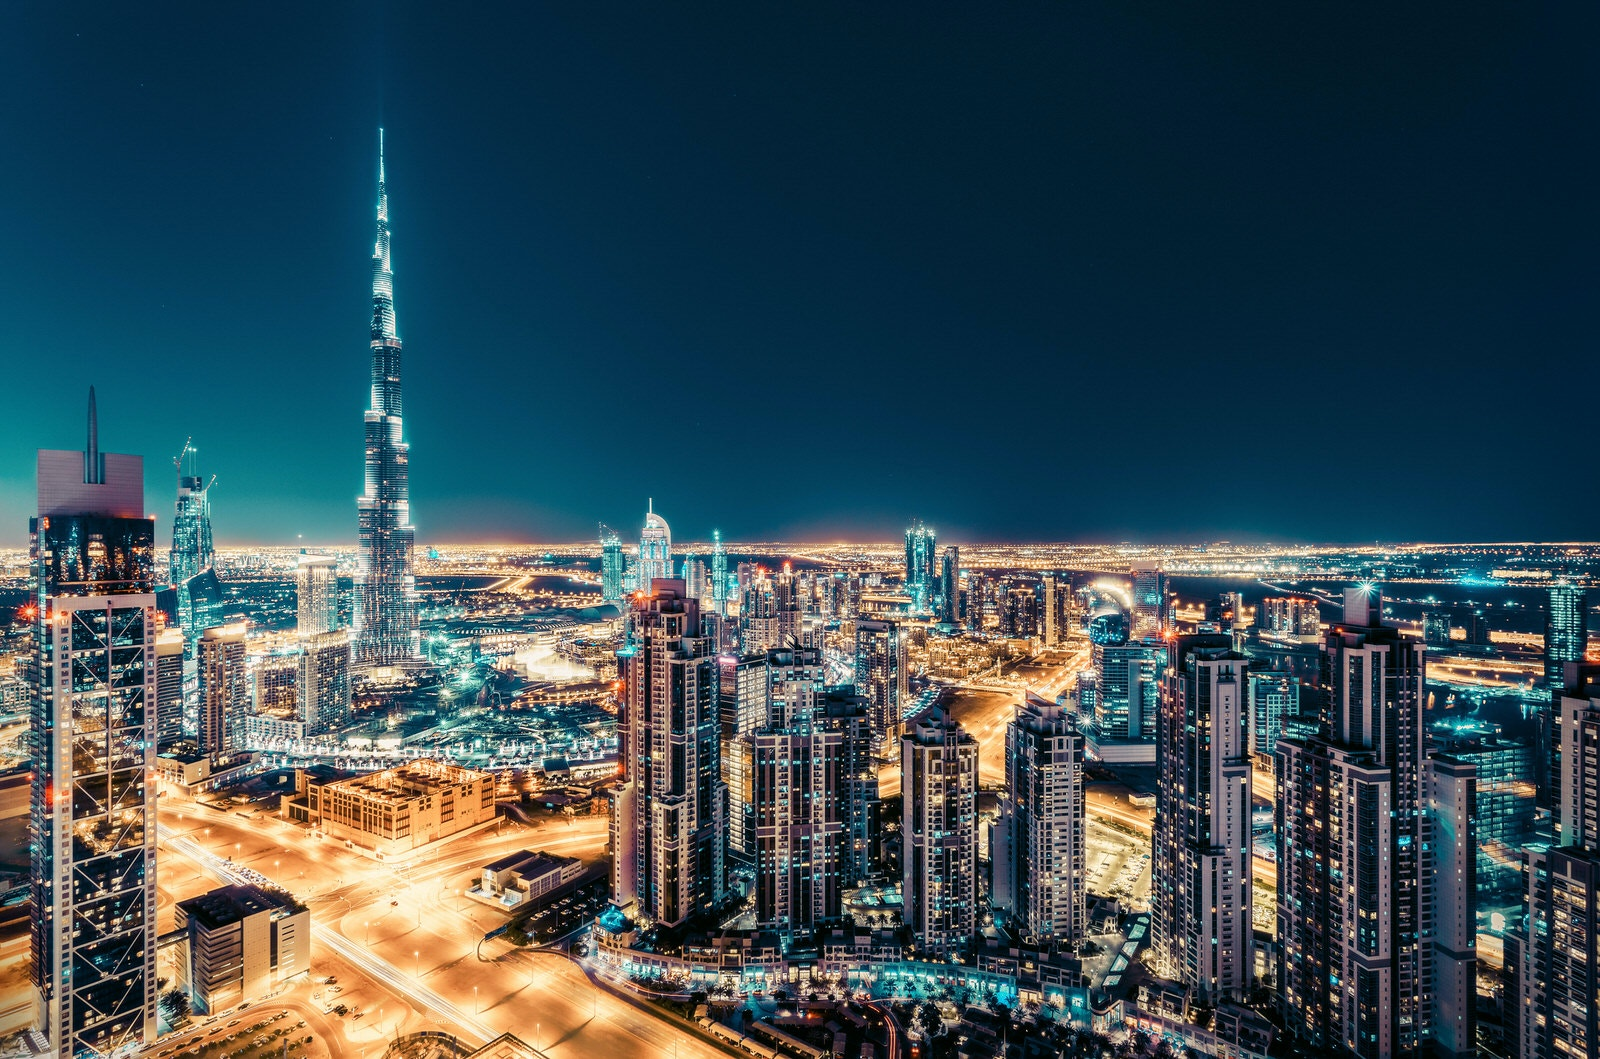 Elevated view of downtown Dubai, UAE, at night with illuminated skyscrapers © Funny Solution Studio / Shutterstock